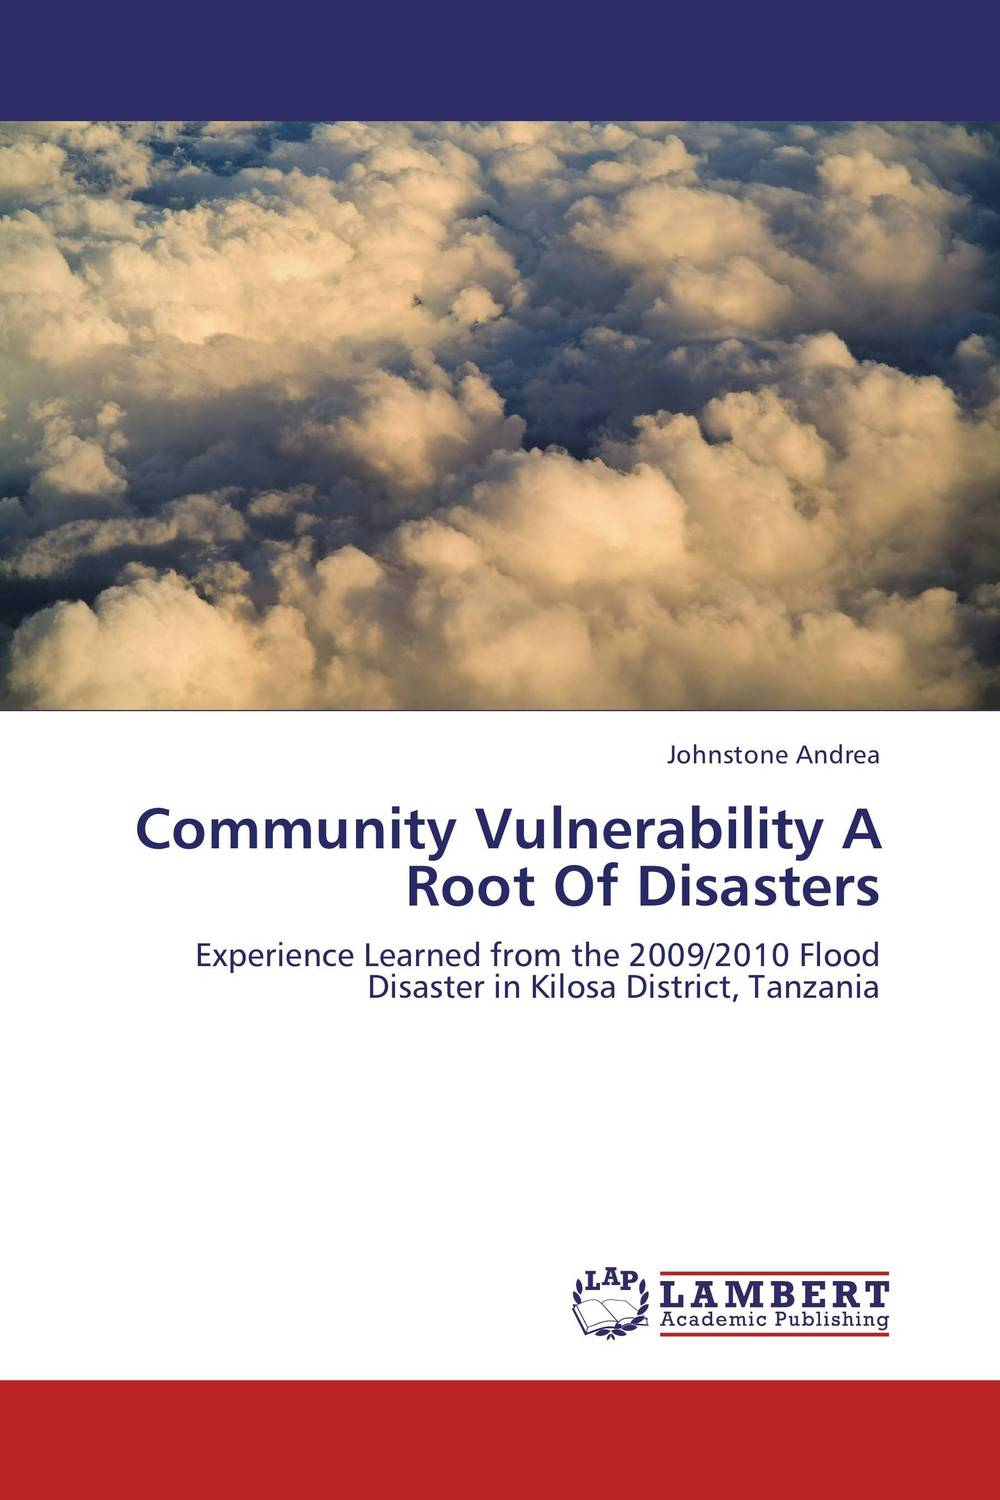 Community Vulnerability A Root Of Disasters the teeth with root canal students to practice root canal preparation and filling actually